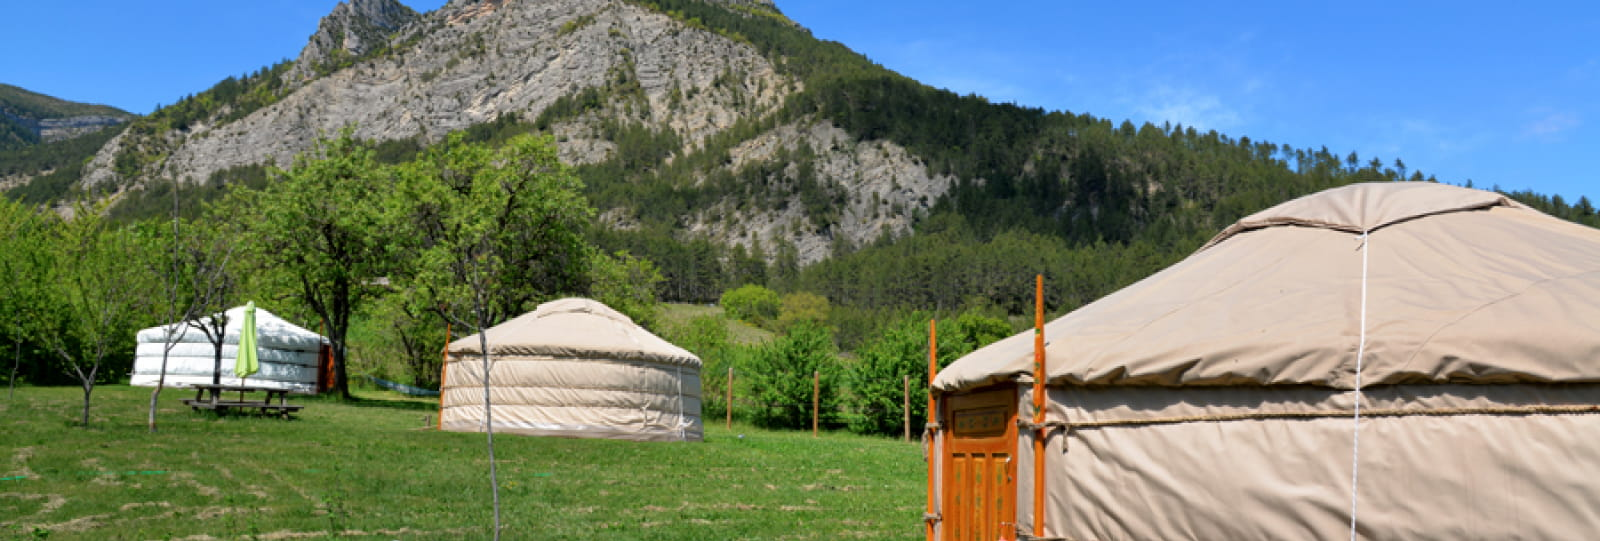 Beaufayne, Solaure and Justine Yurts at the Ferme d'Ausson